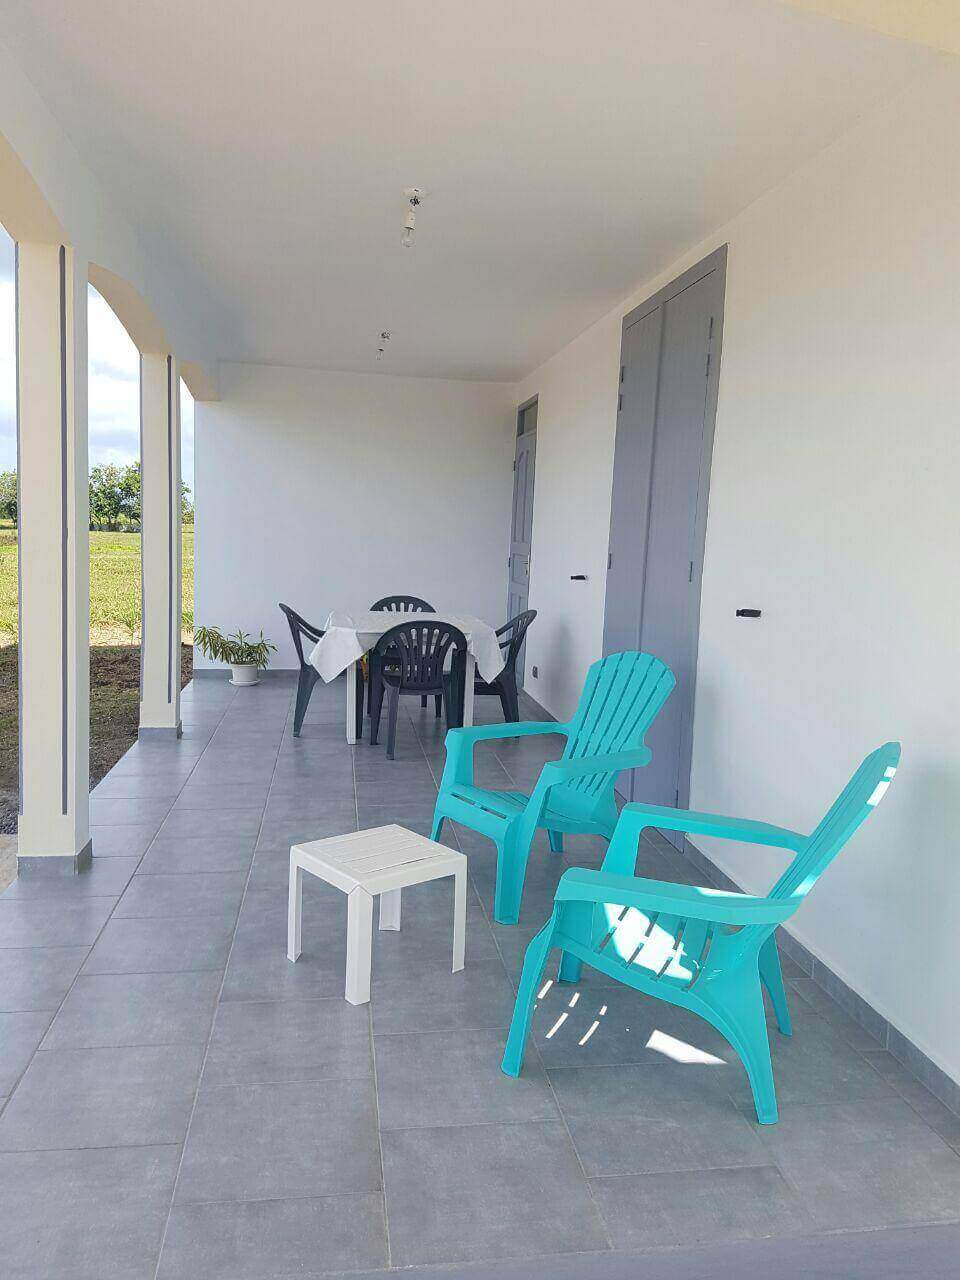 Location maison appartement guadeloupe sainte anne 64 for Location maison